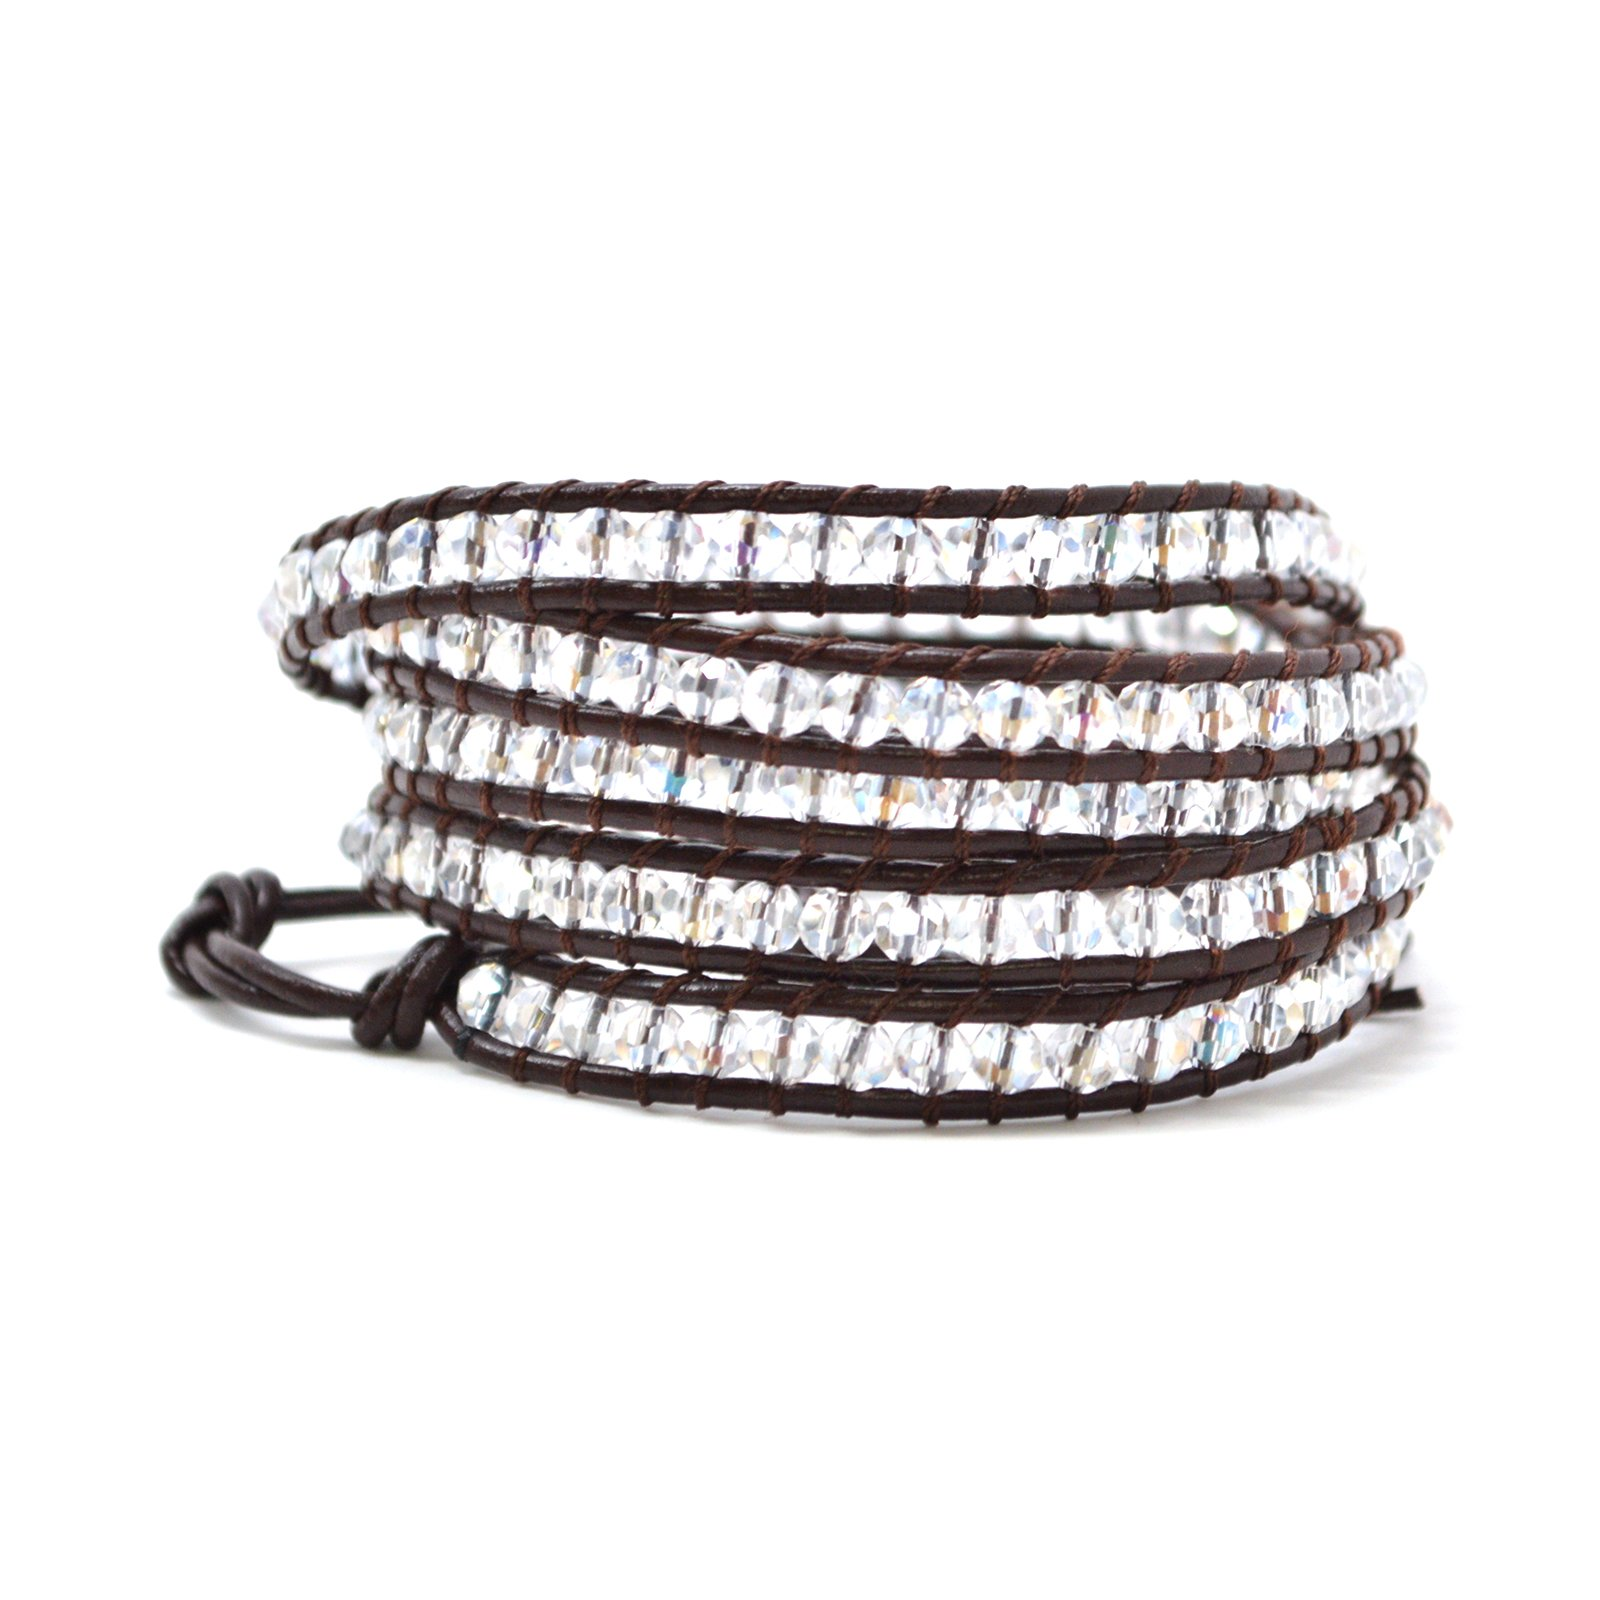 Baubles N Gems Bohemian Boho Style Clear Faceted Agate Beads Dark Brown 23'' 3-4 or 34'' 5-6 Wrap and String Bracelet (34 Inches)